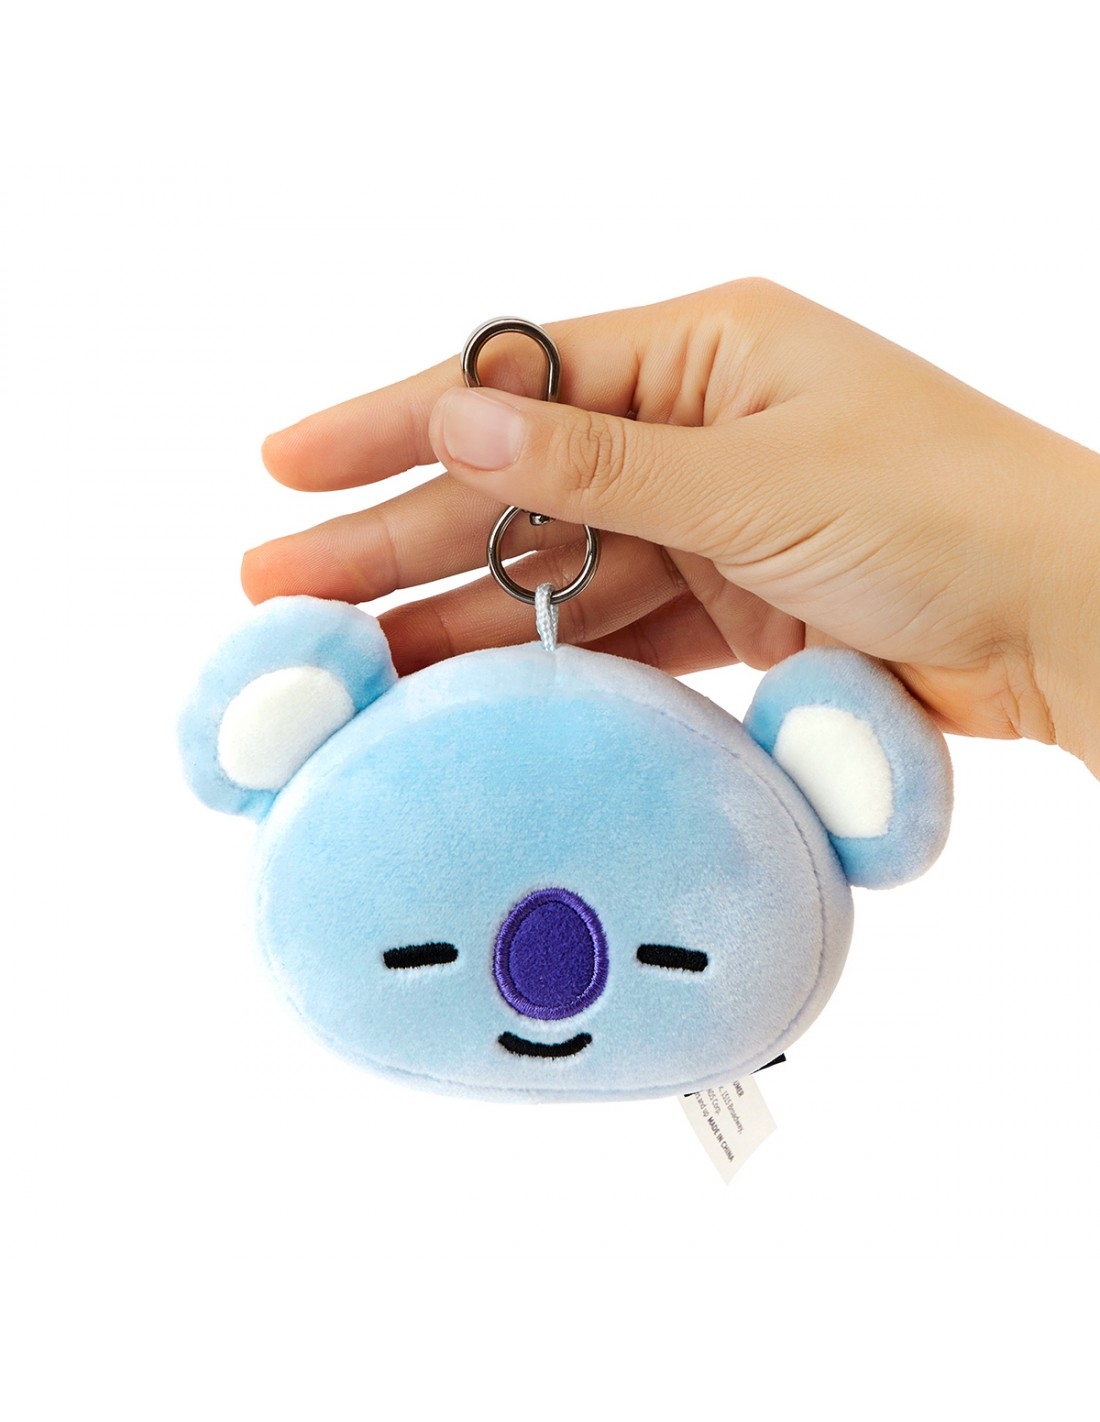 Blue Dream 53 Ford Pickup additionally 48946 580035 Bt21 Bts Line Friends Collaboration Face Doll Keyring10cm besides 207405582 Volvo V50 2004 2010 Parts Manual moreover 30 Series Die Je Keek Als 90s Kid additionally Wat Een Led Diode. on detail astro van